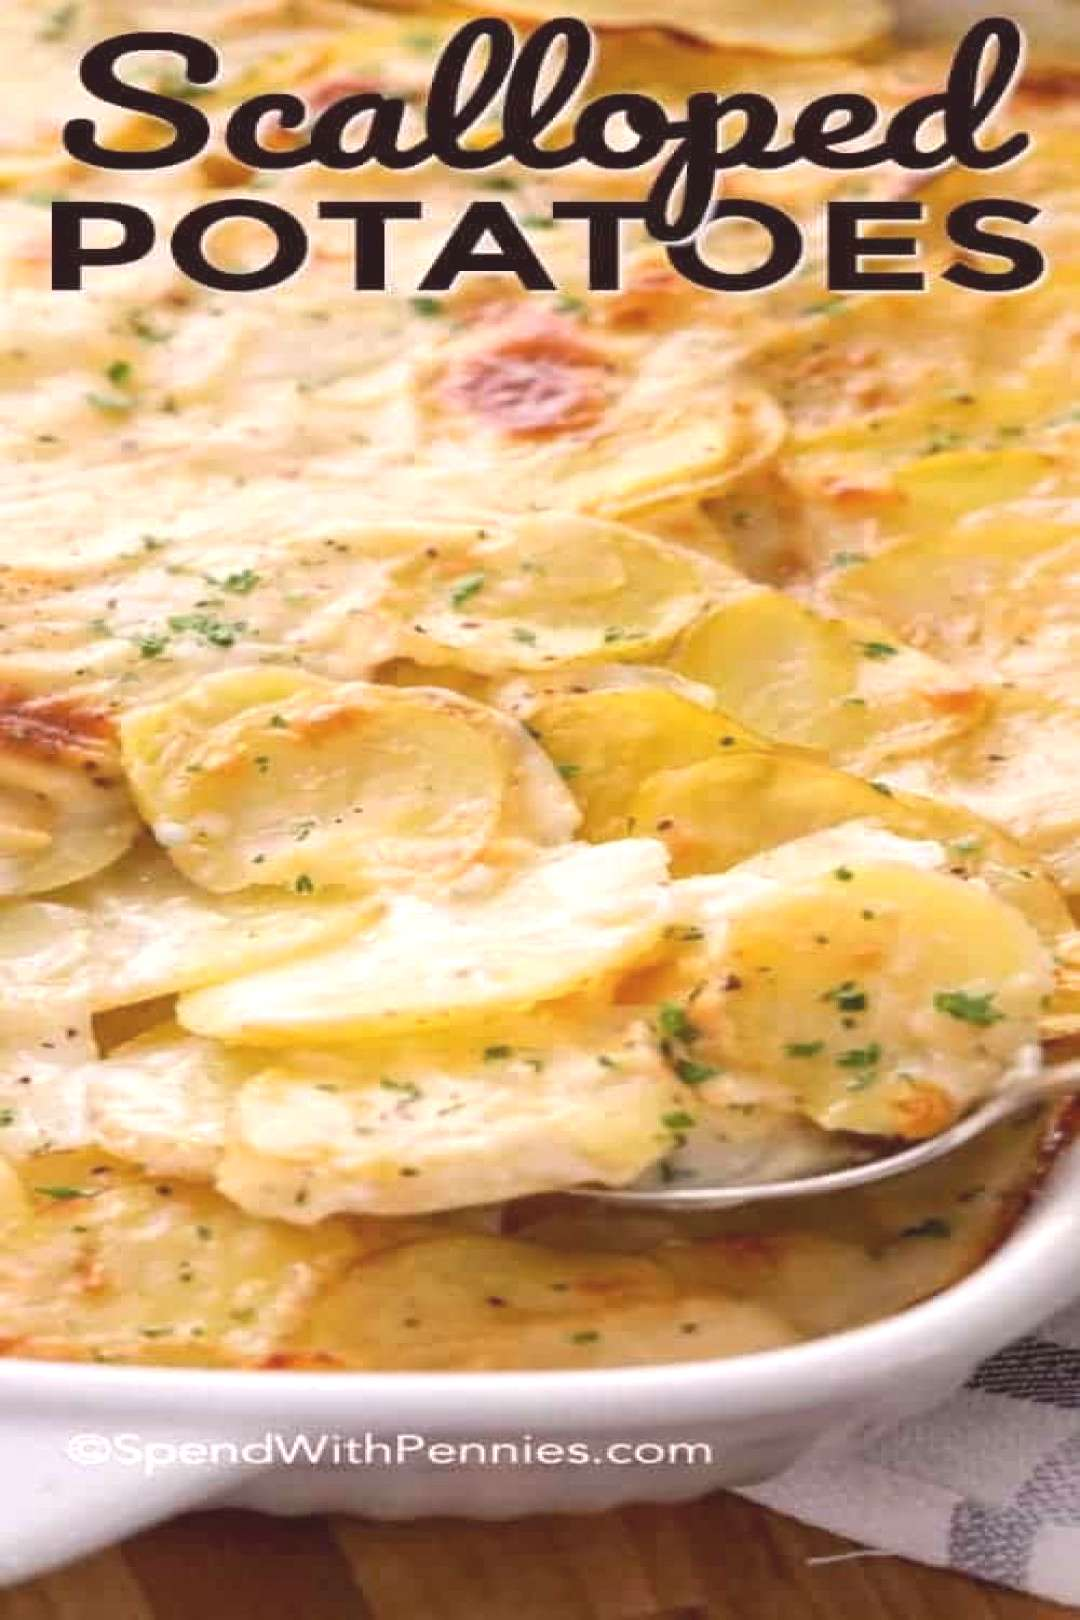 Scalloped Potatoes Recipe - Spend With Pennies -